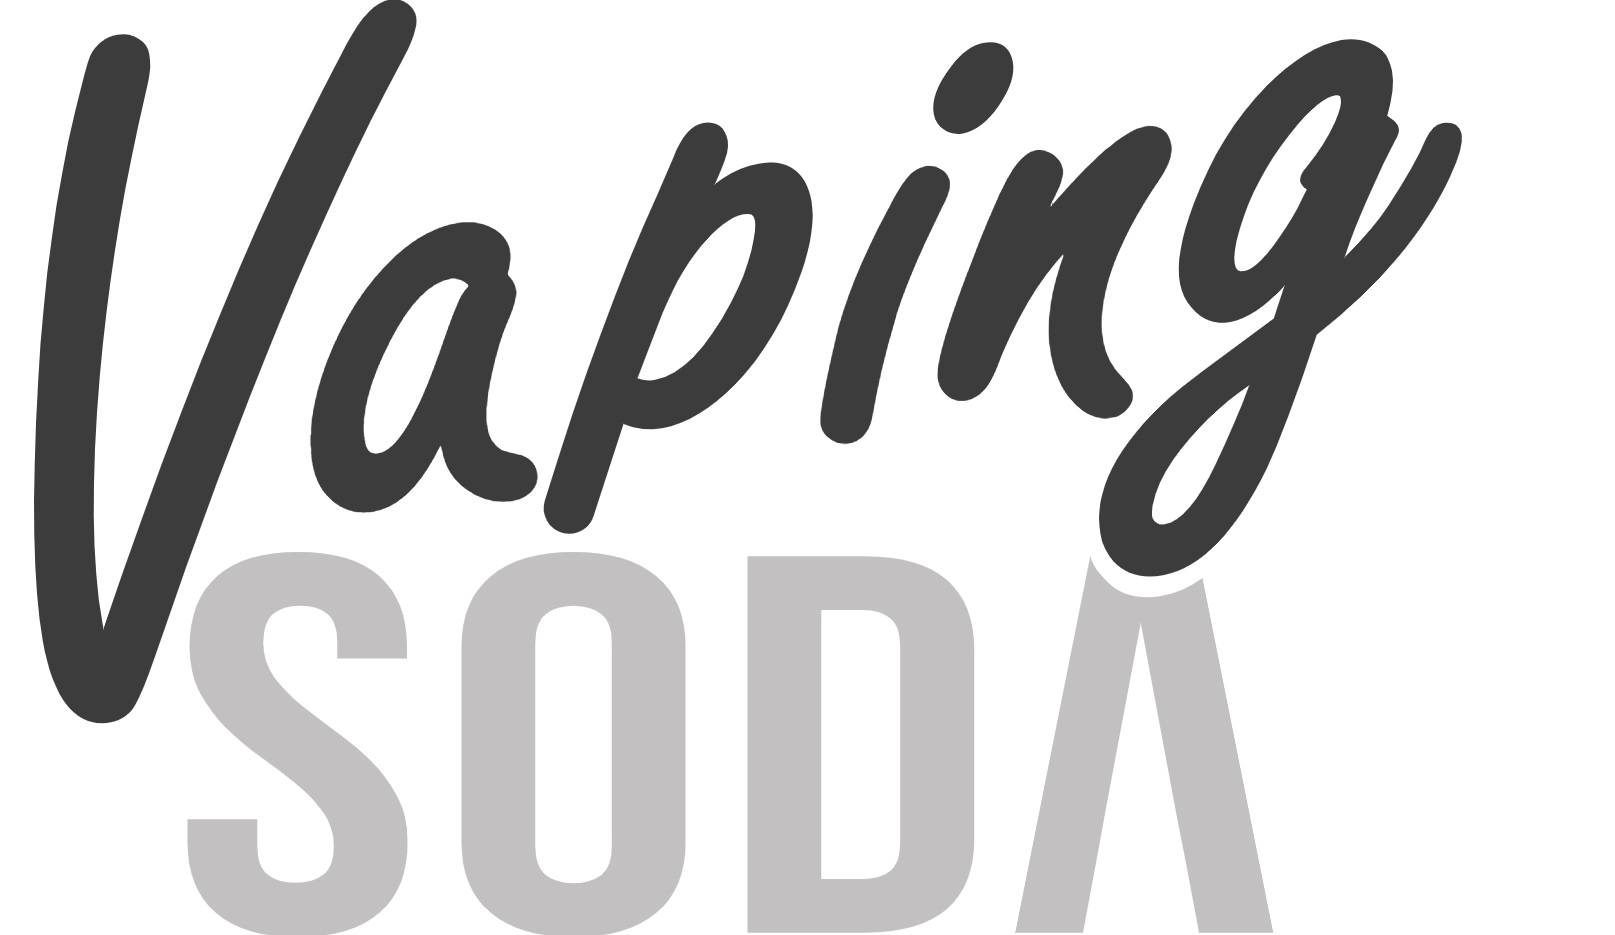 Vaping Soda logo